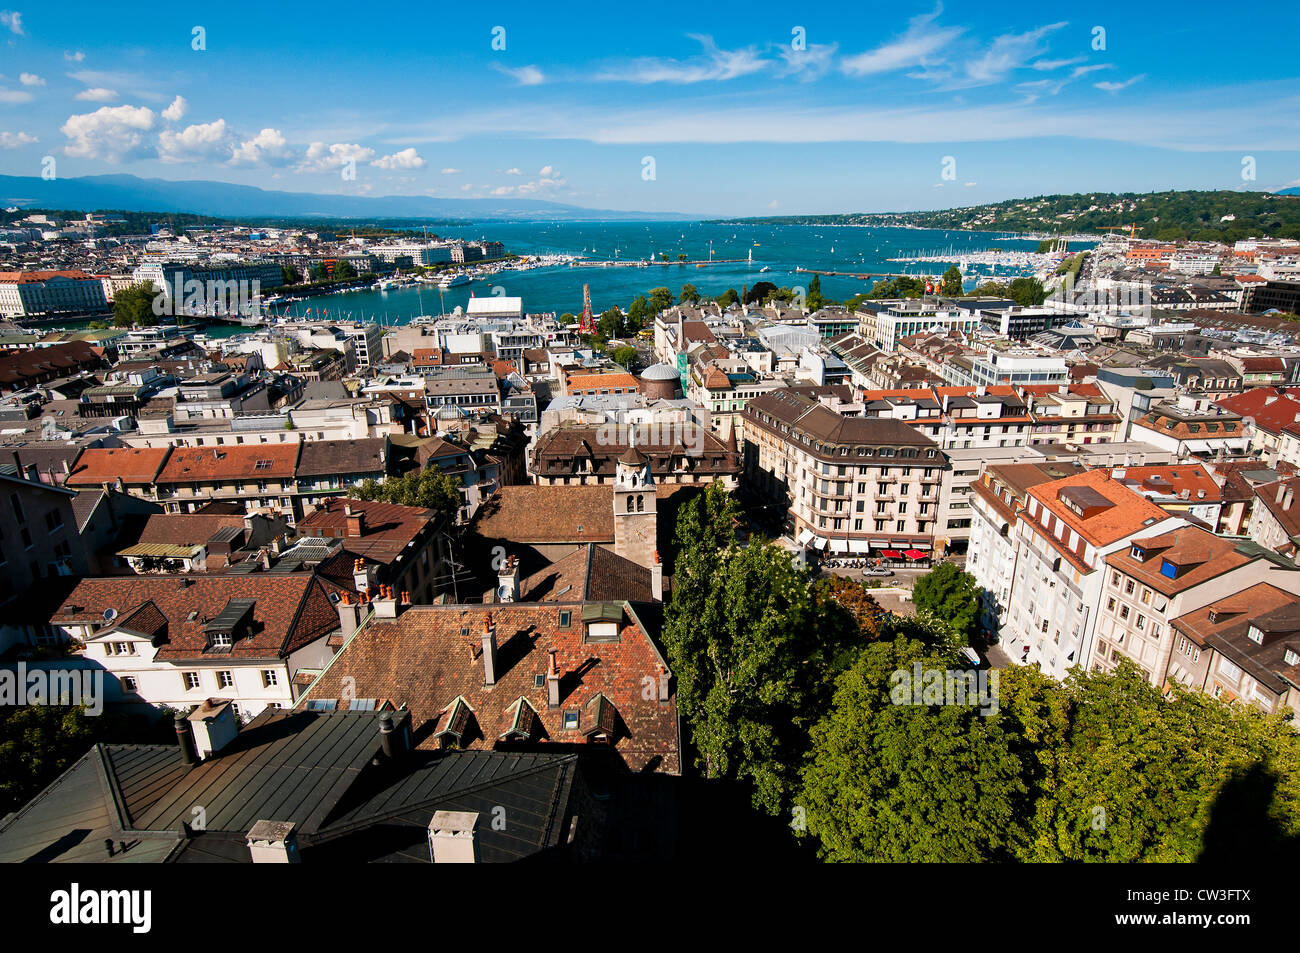 Panoramic view over city rooftops and Lake Geneva, Geneva, Switzerland - Stock Image